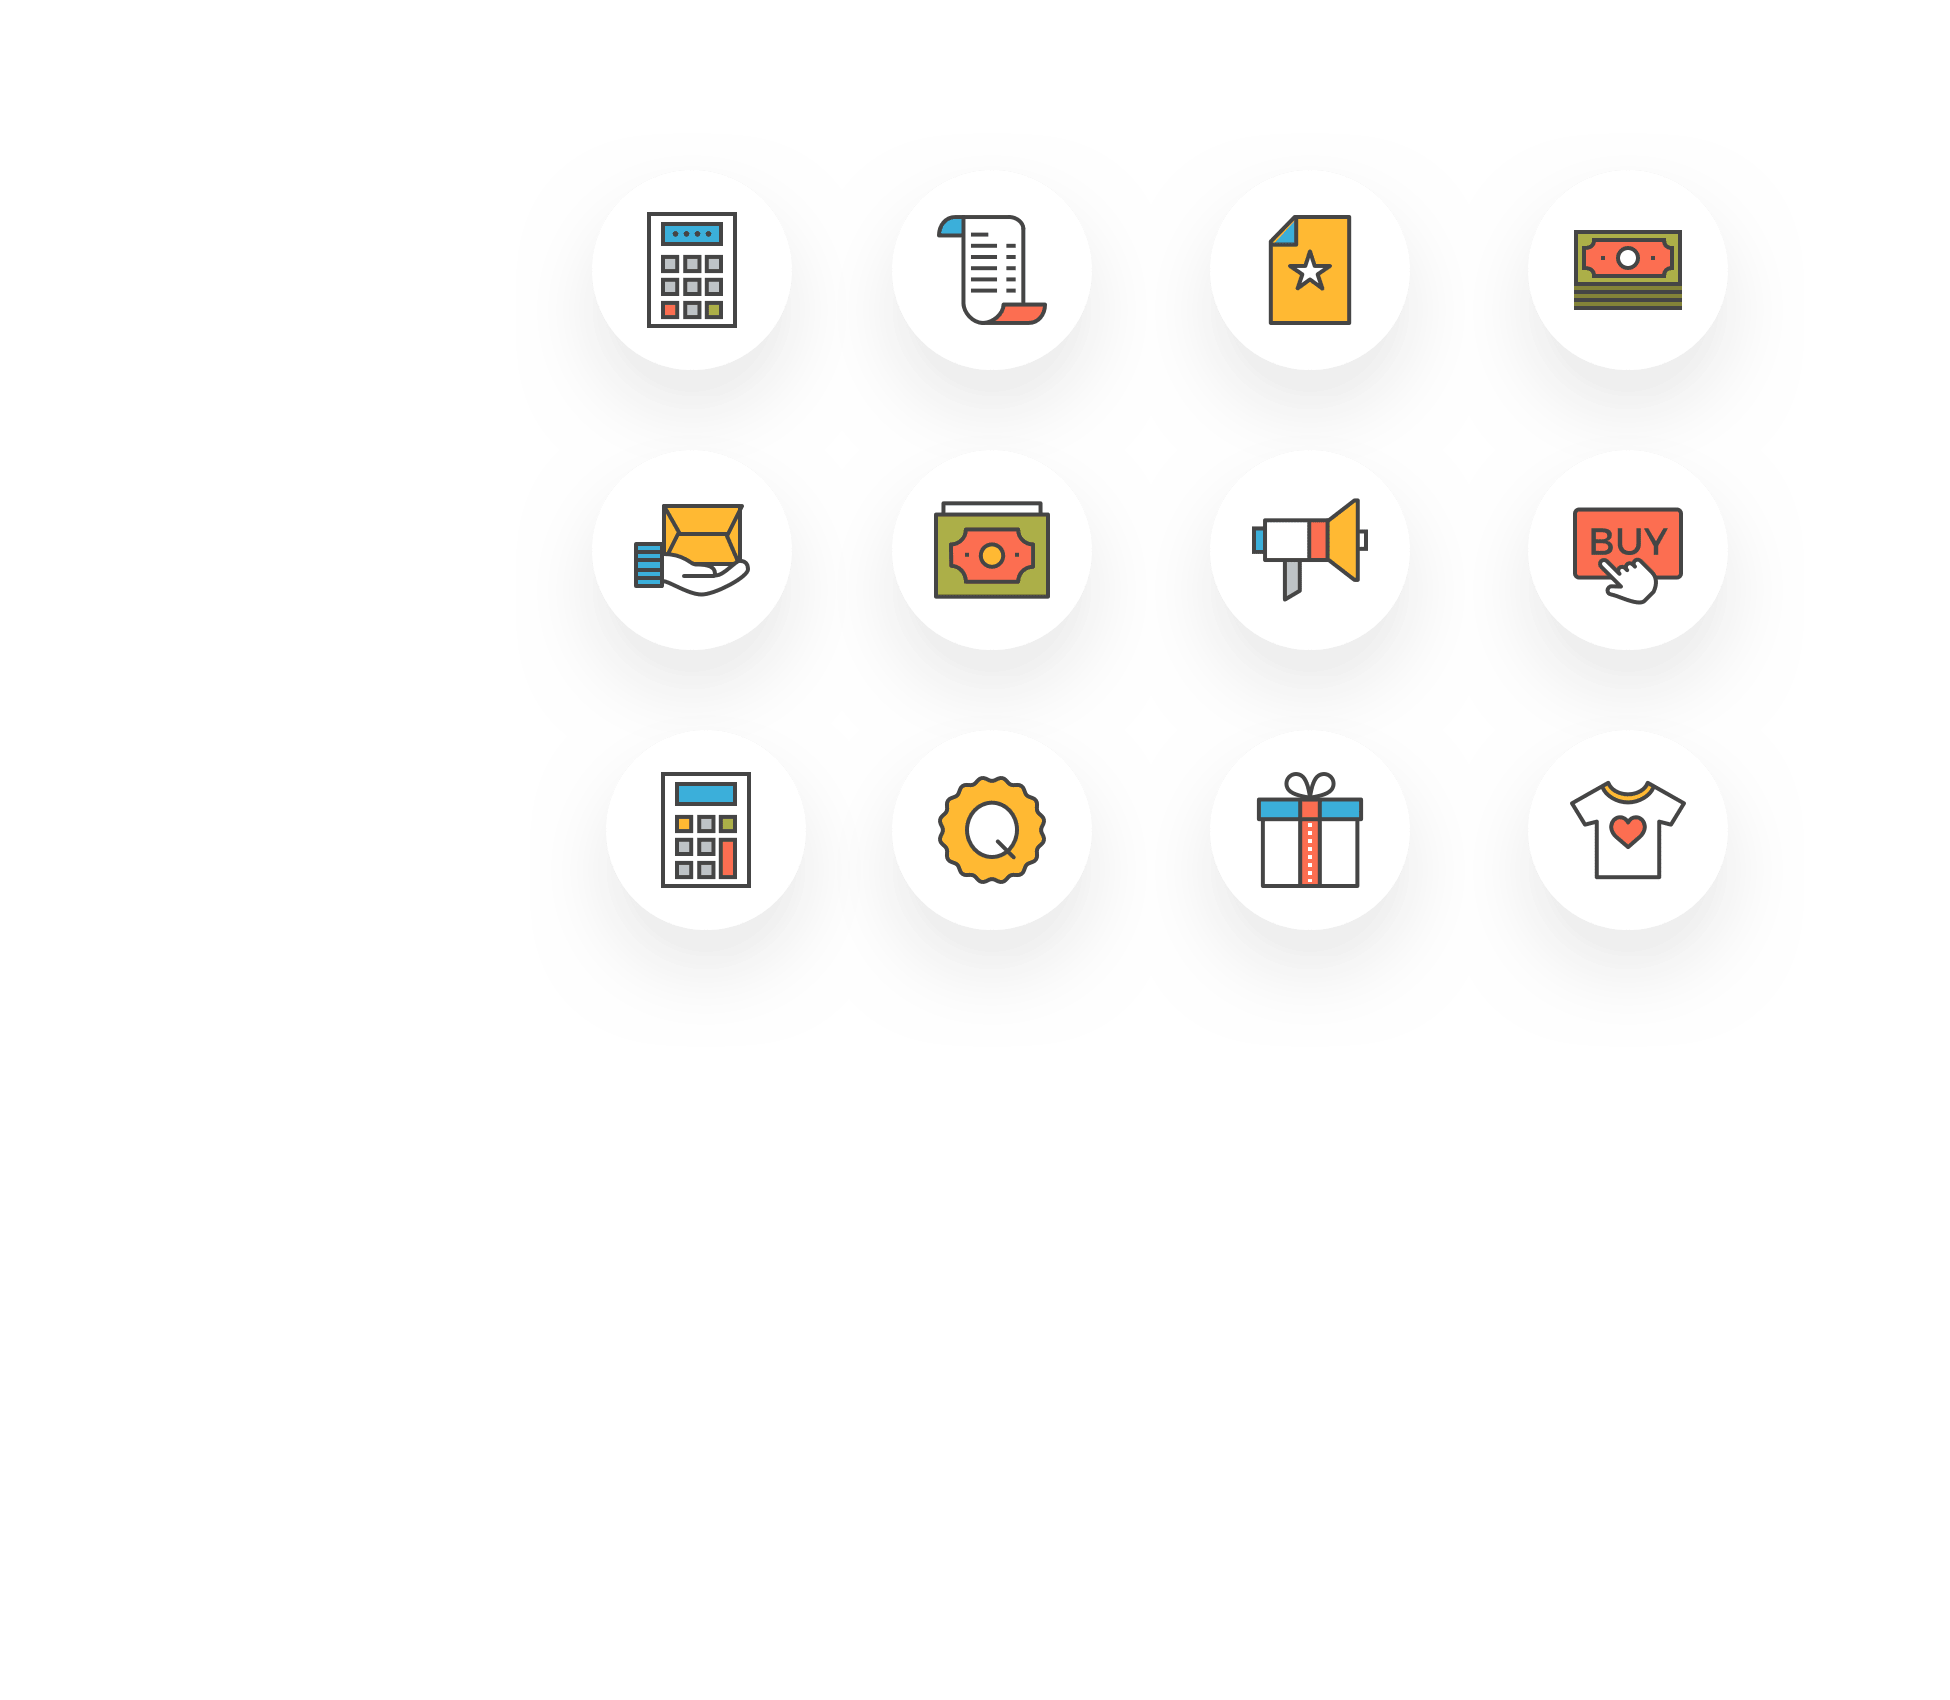 Download your ecommerce icon pack today